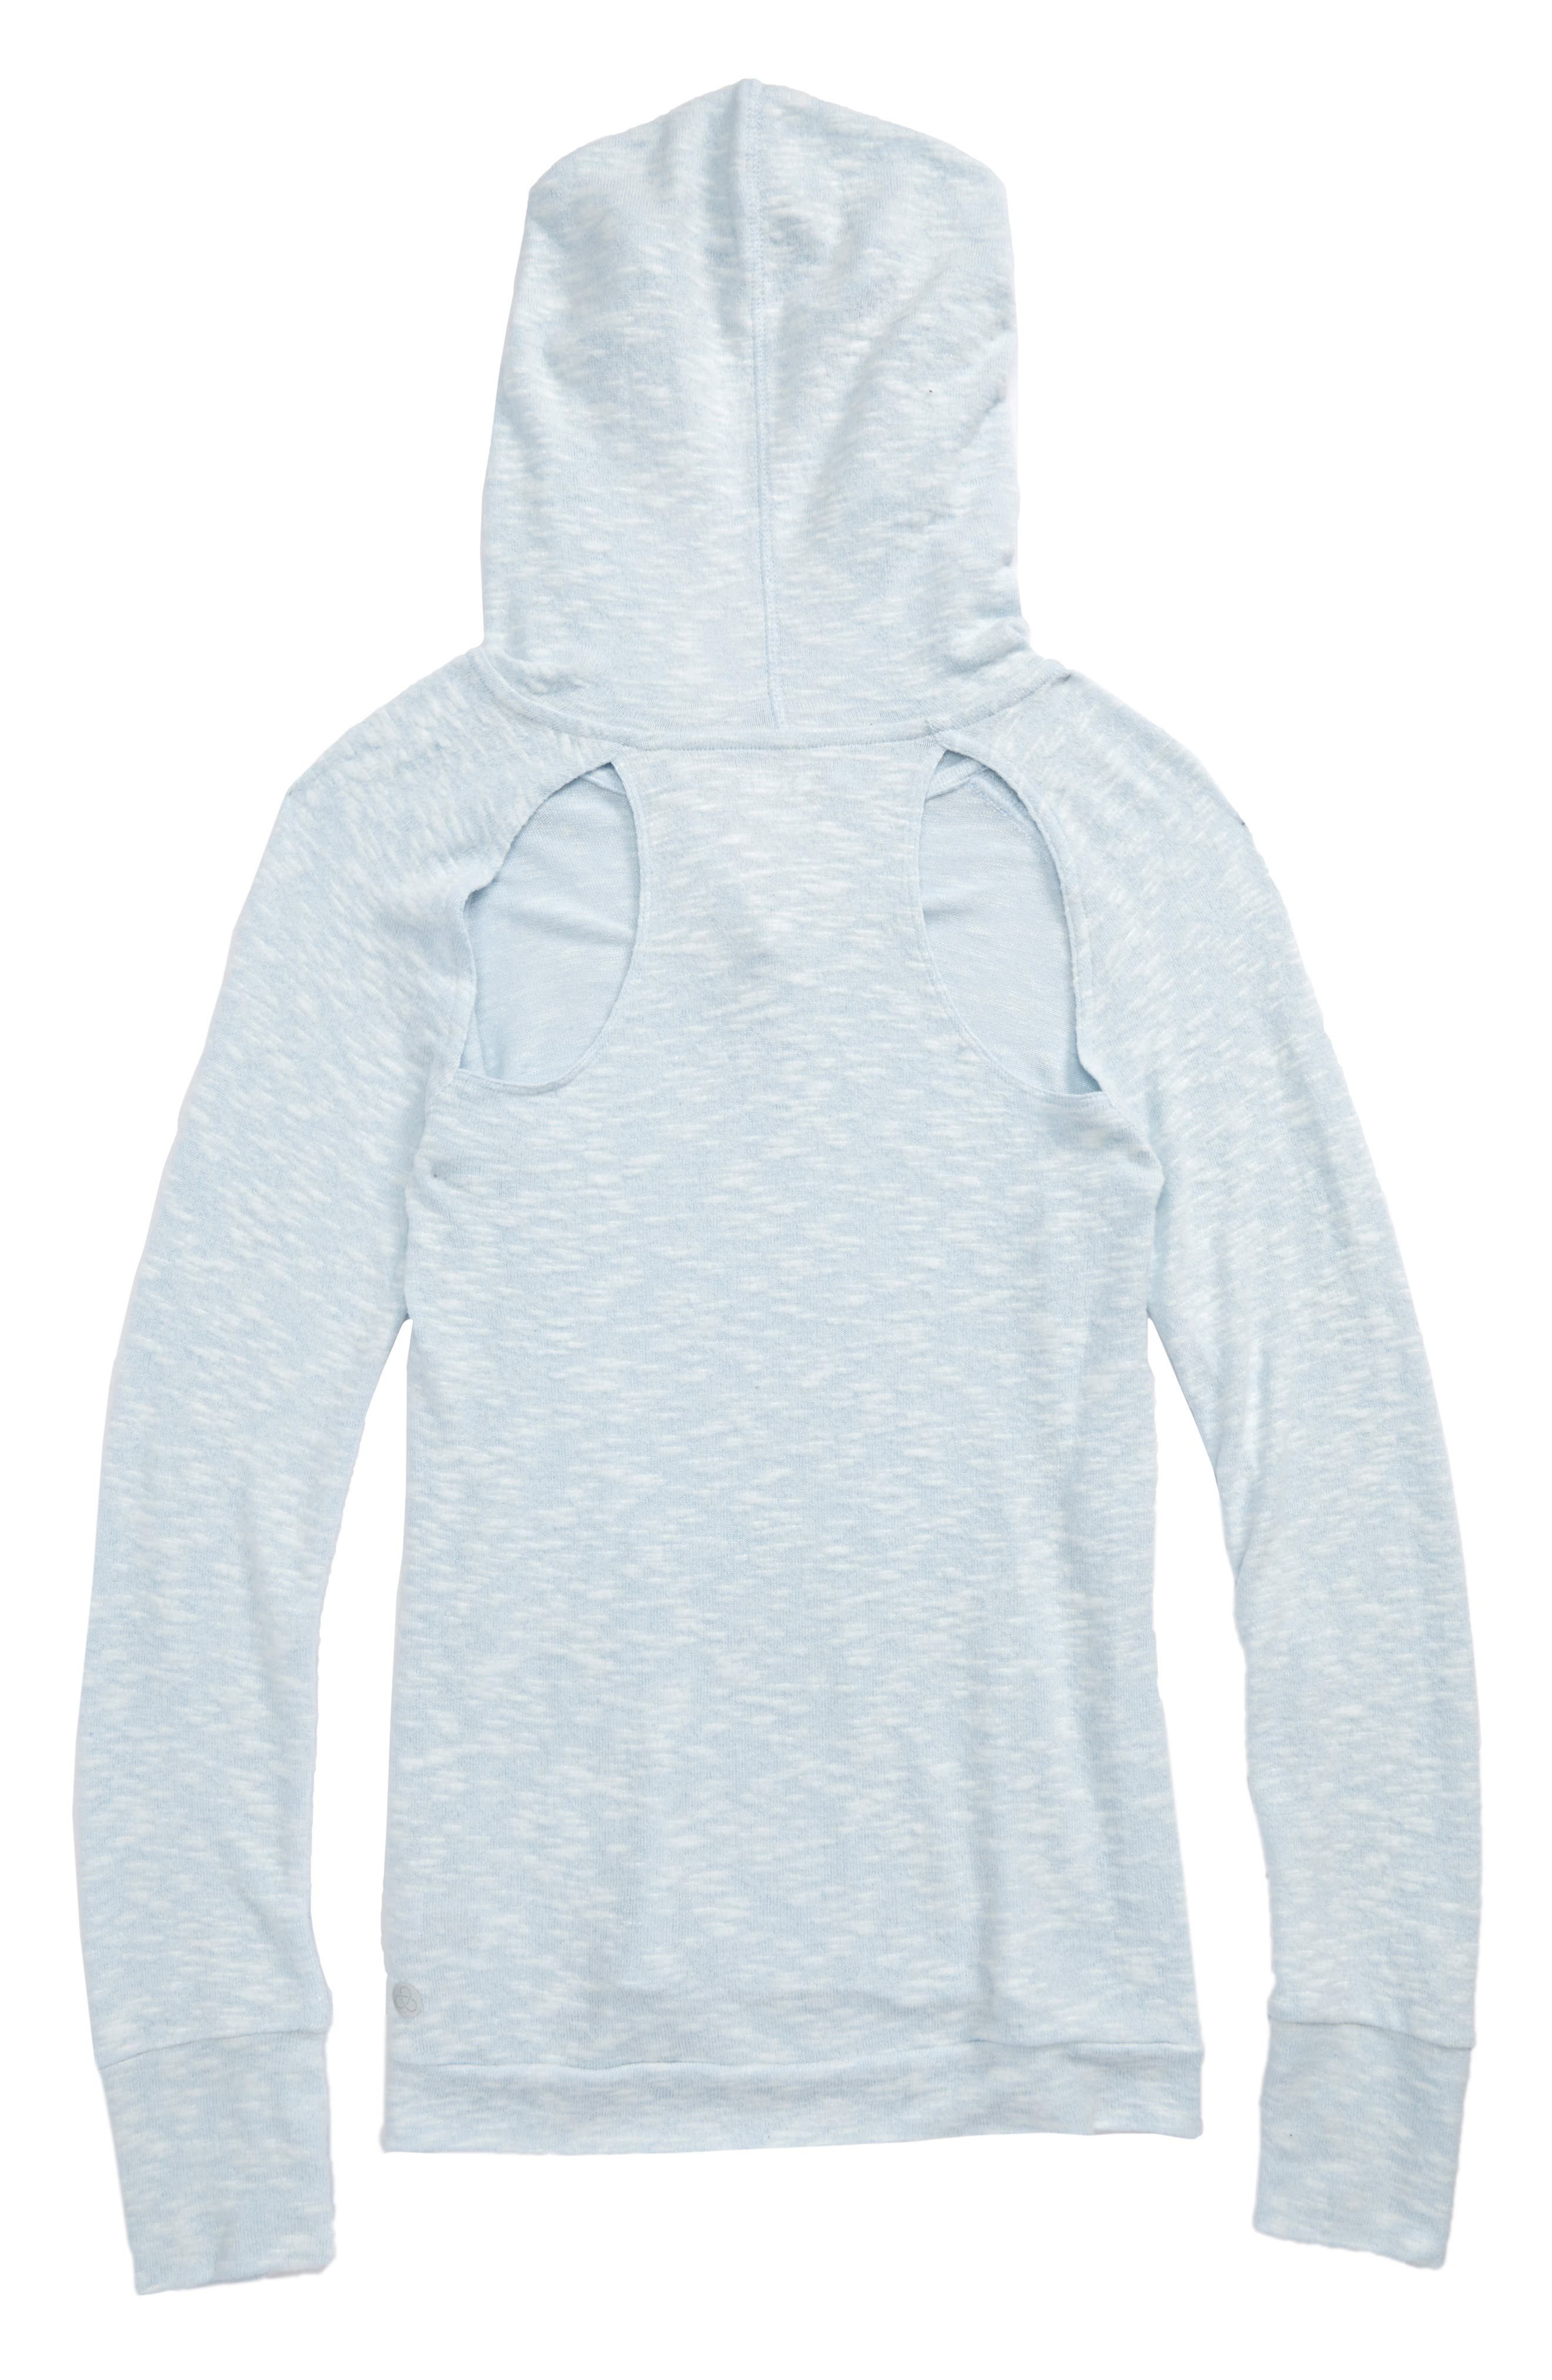 Vinyasa Cutout Hooded Pullover,                             Alternate thumbnail 3, color,                             Blue Omphalodes- White